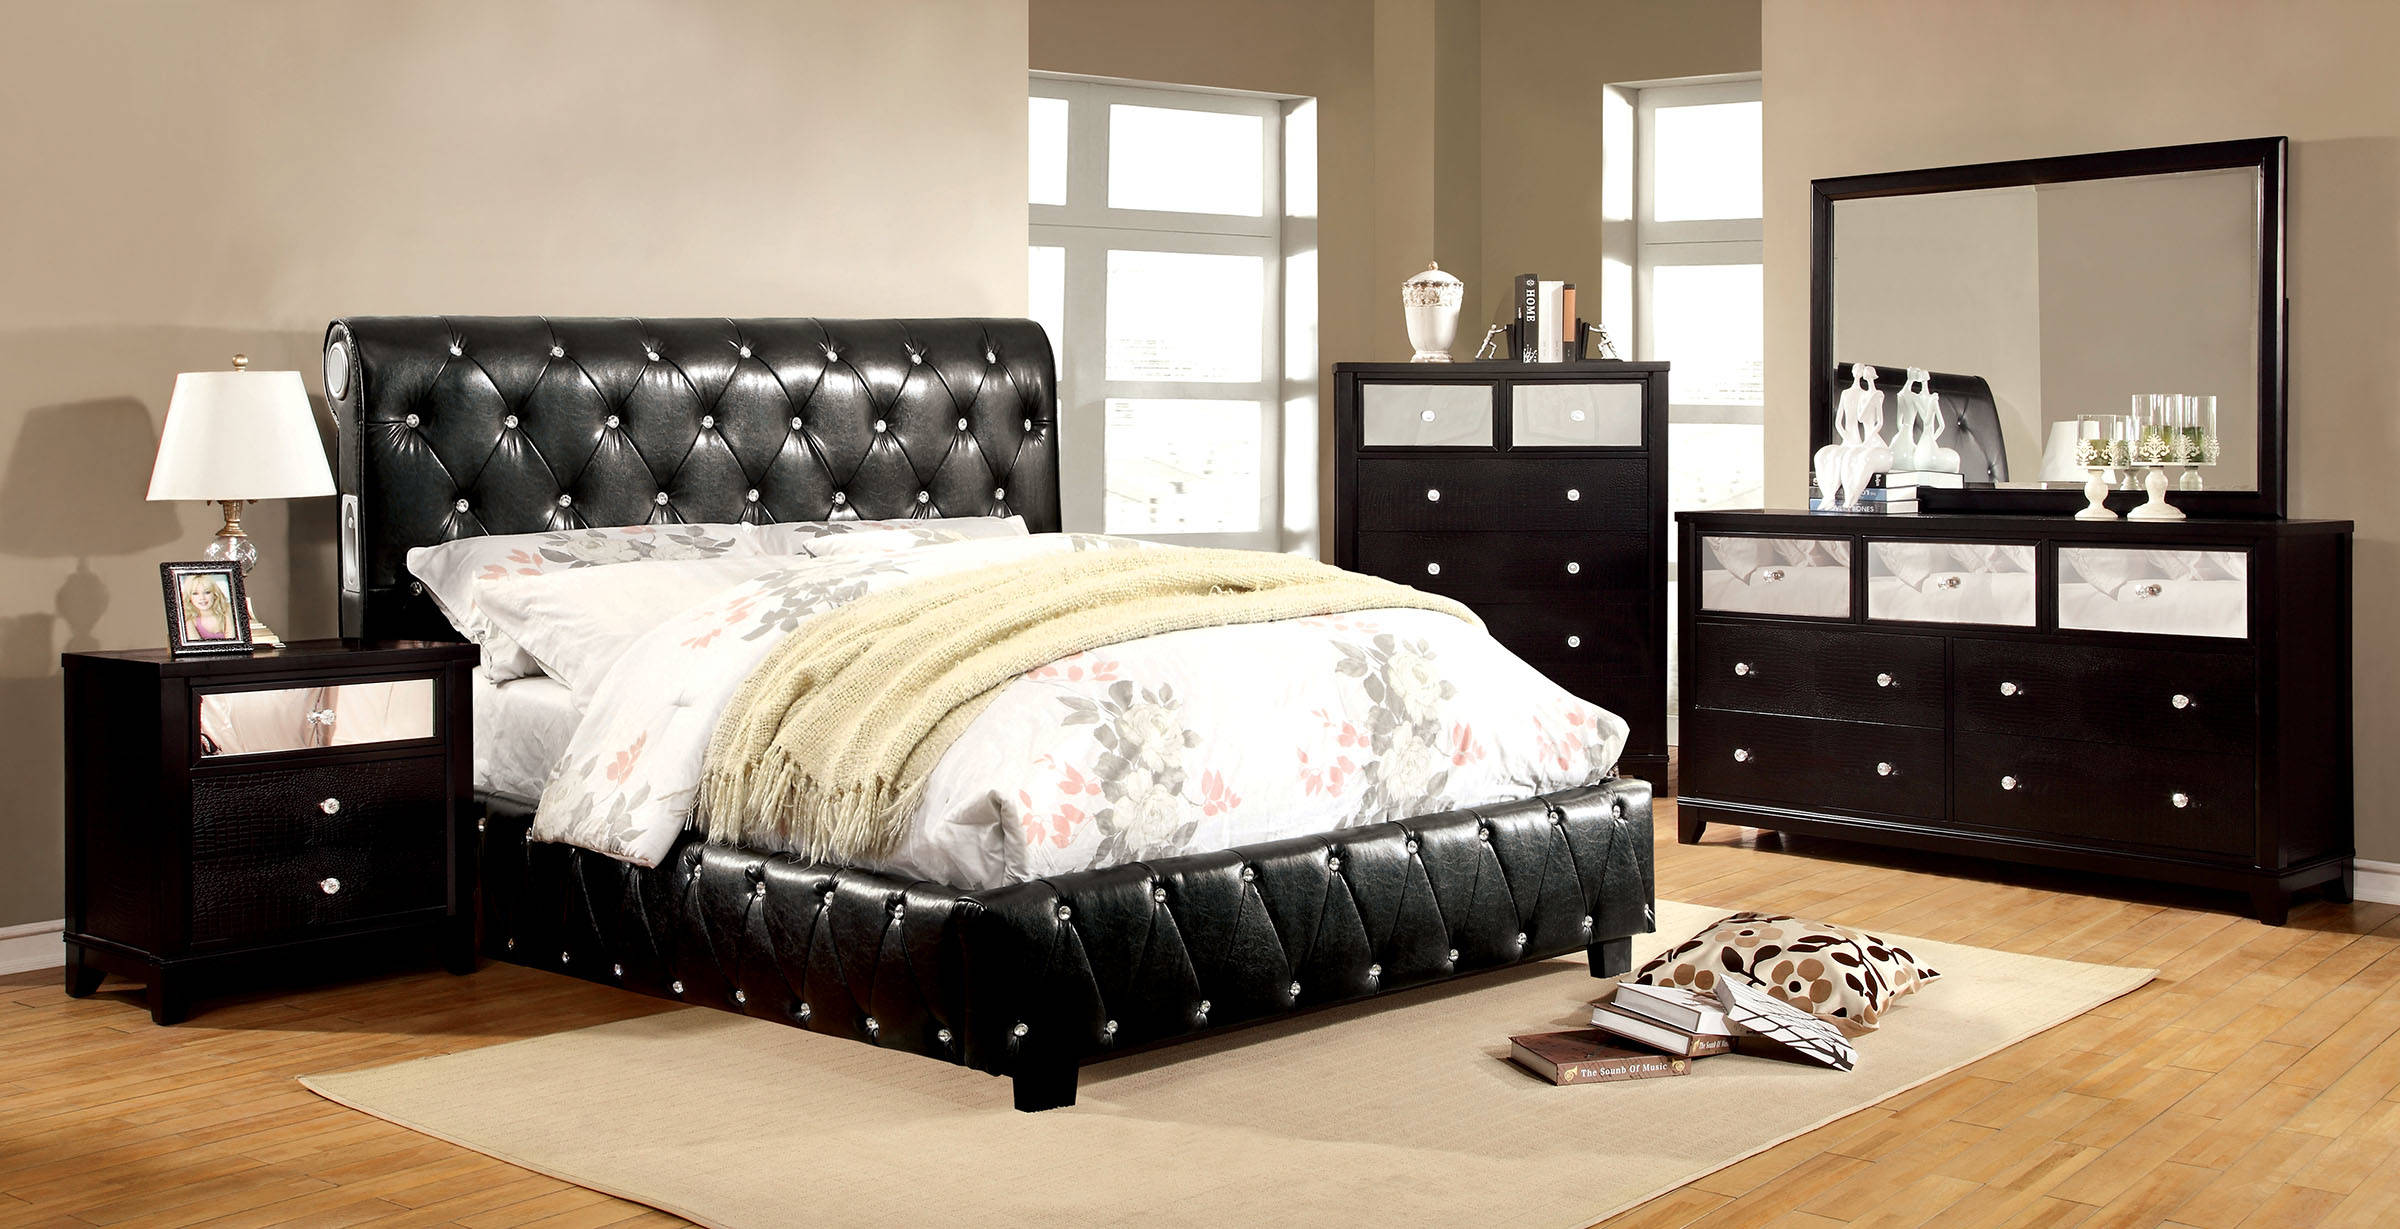 Juilliard Contemporary Solid Wood Leatherette Master Bedroom Set Bedrooms The Classy Home